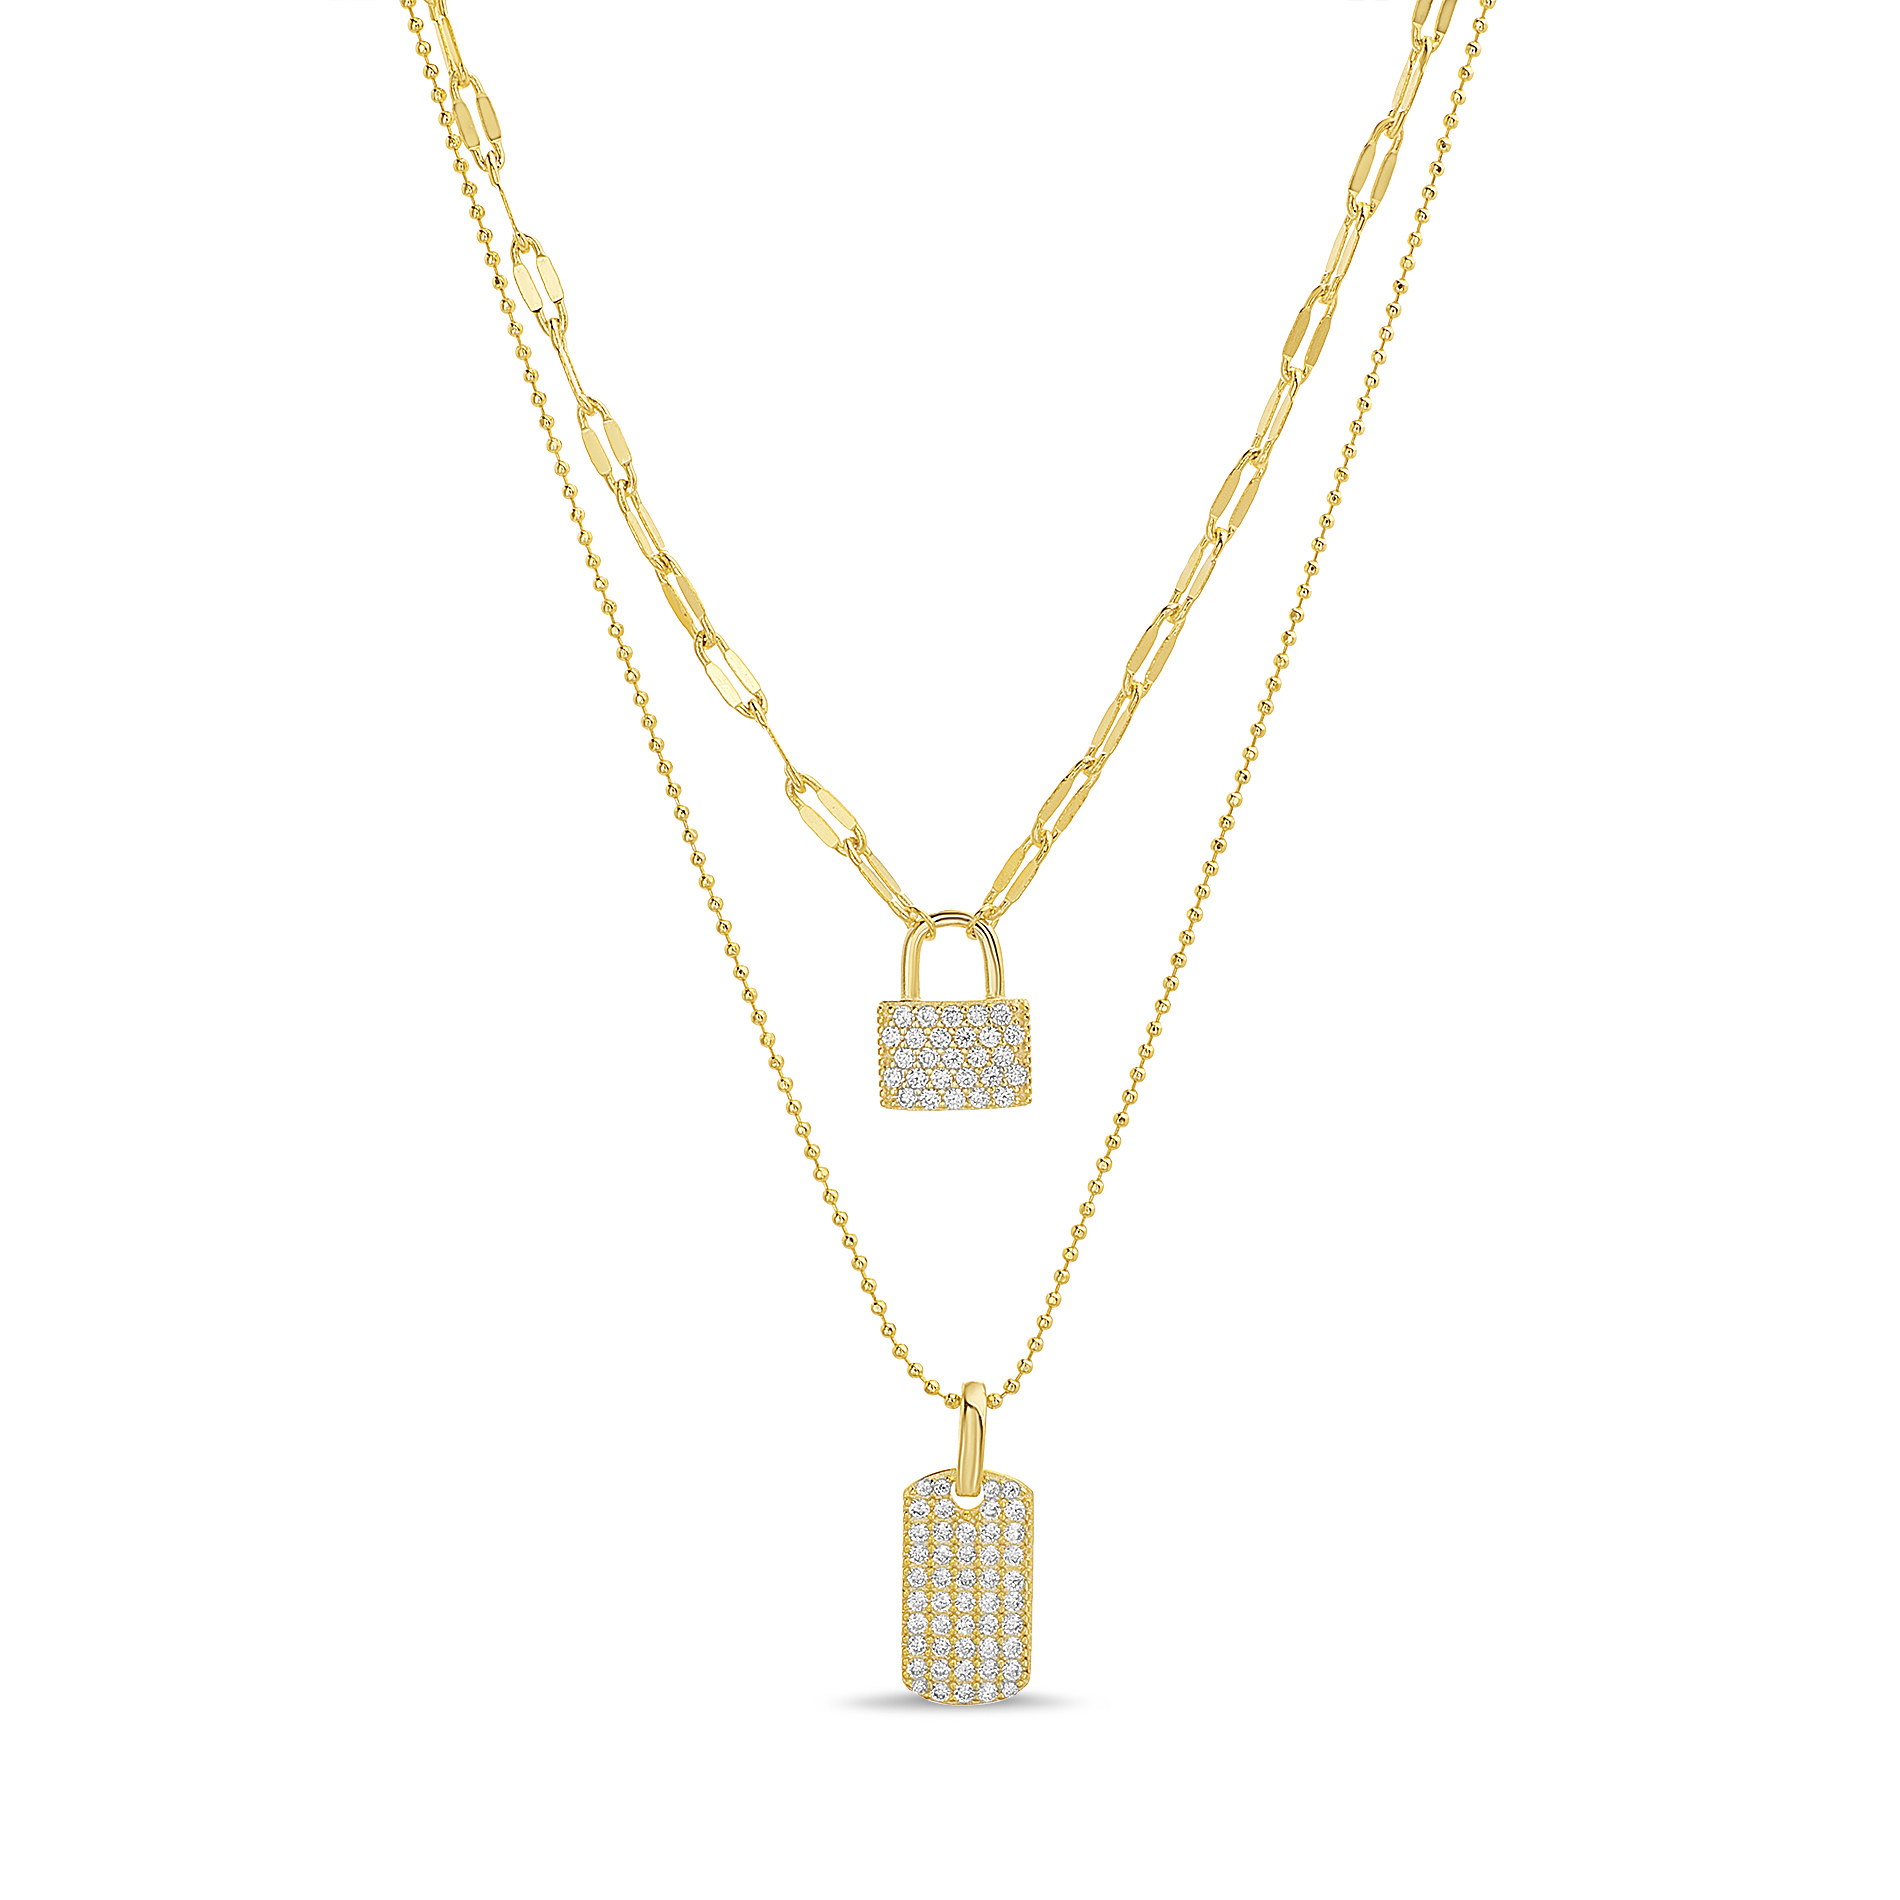 The sparkly layered necklace with lock charms